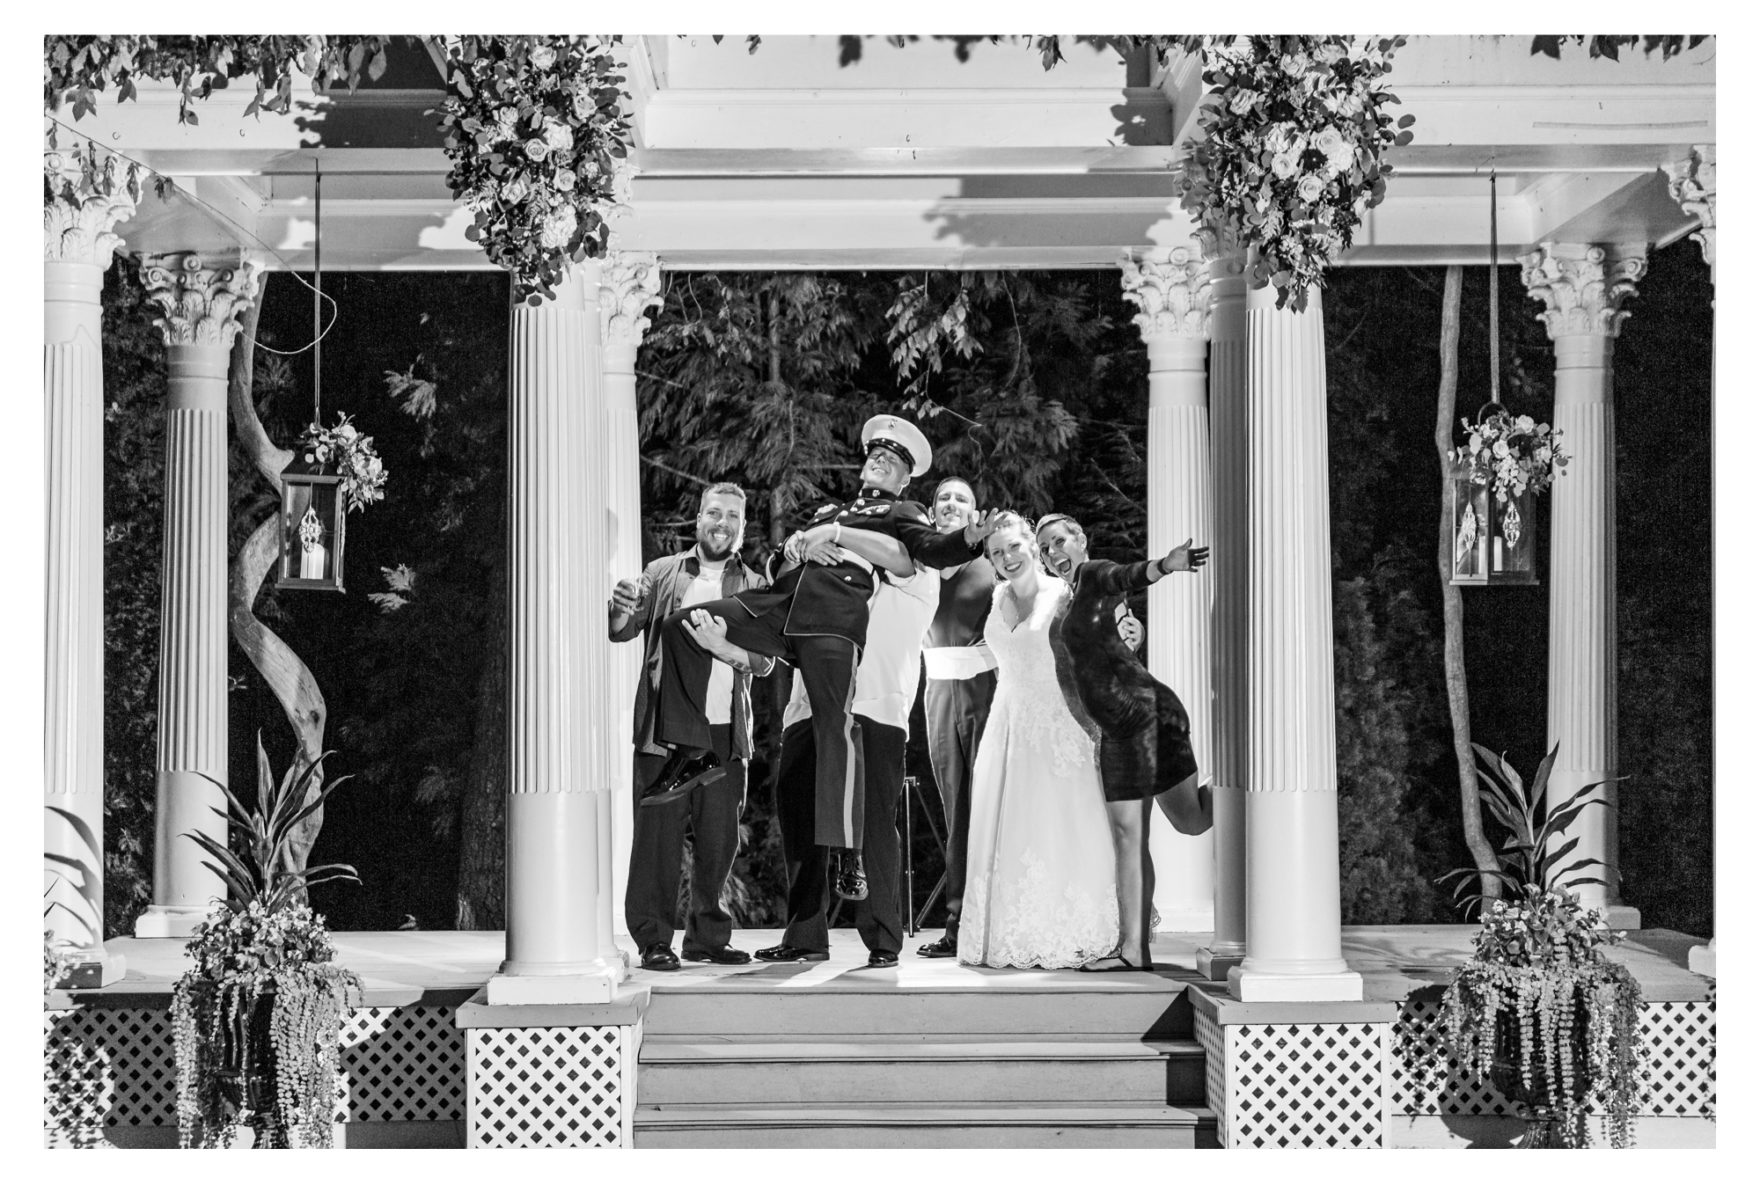 Frederick Wedding Photographer, Frederick Wedding, Ceresville Mansion Wedding, Fall Wedding, Burgundy Wedding, Outdoor Wedding, Military Wedding, Marine Wedding,  Funny Night Photography